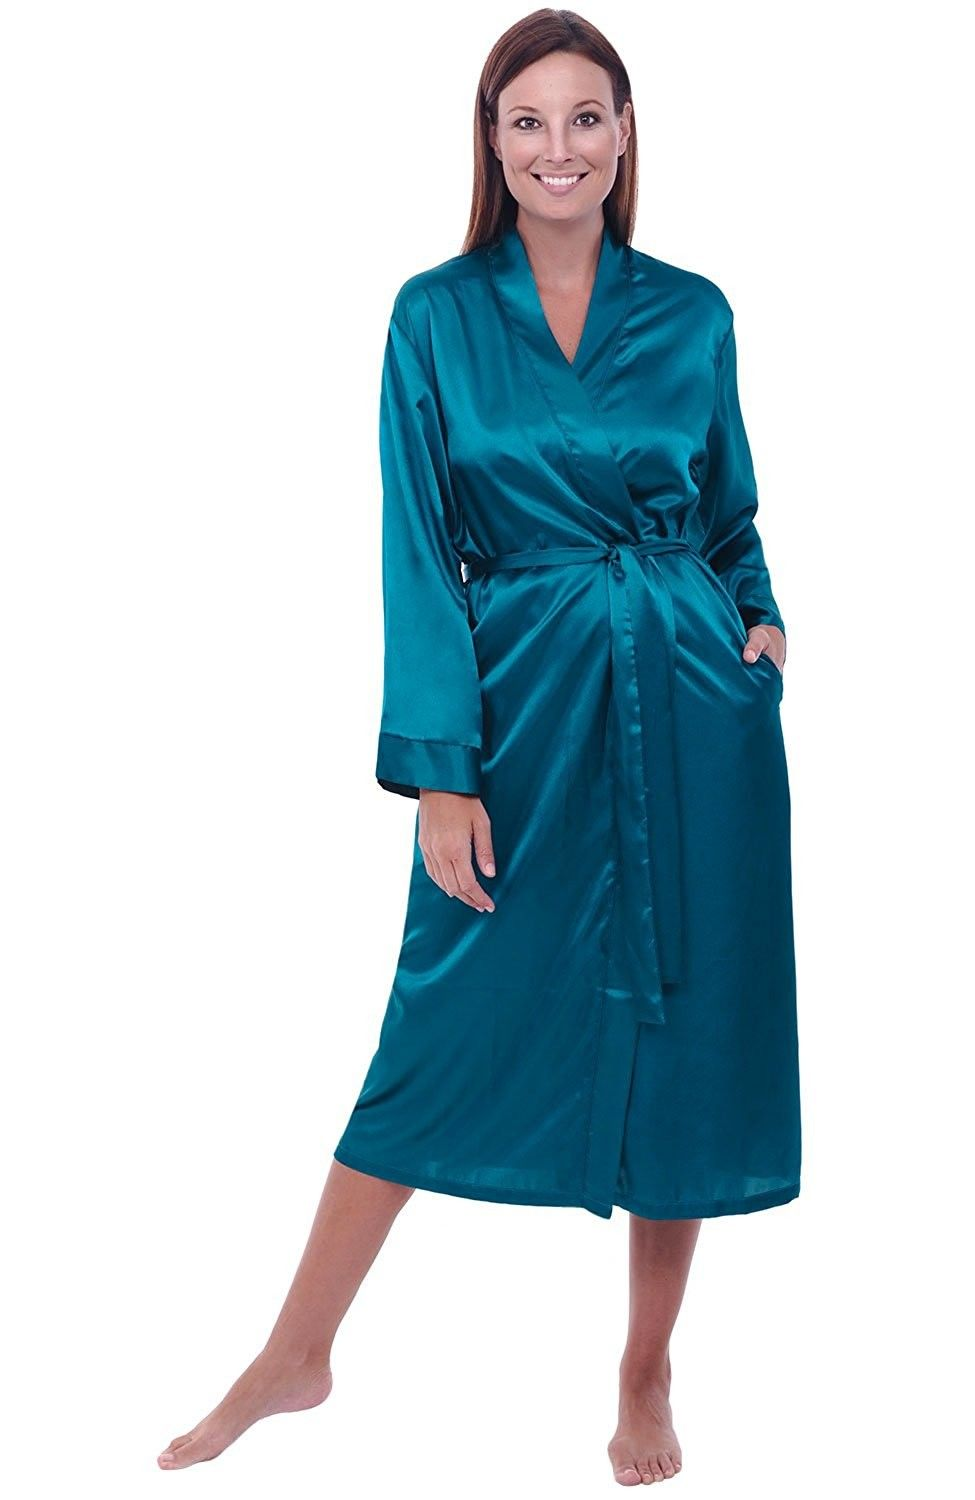 802c85362e114 Womens Satin Robe- Long Dressing Gown - Ocean Depth - C812EF3V5ZN ...